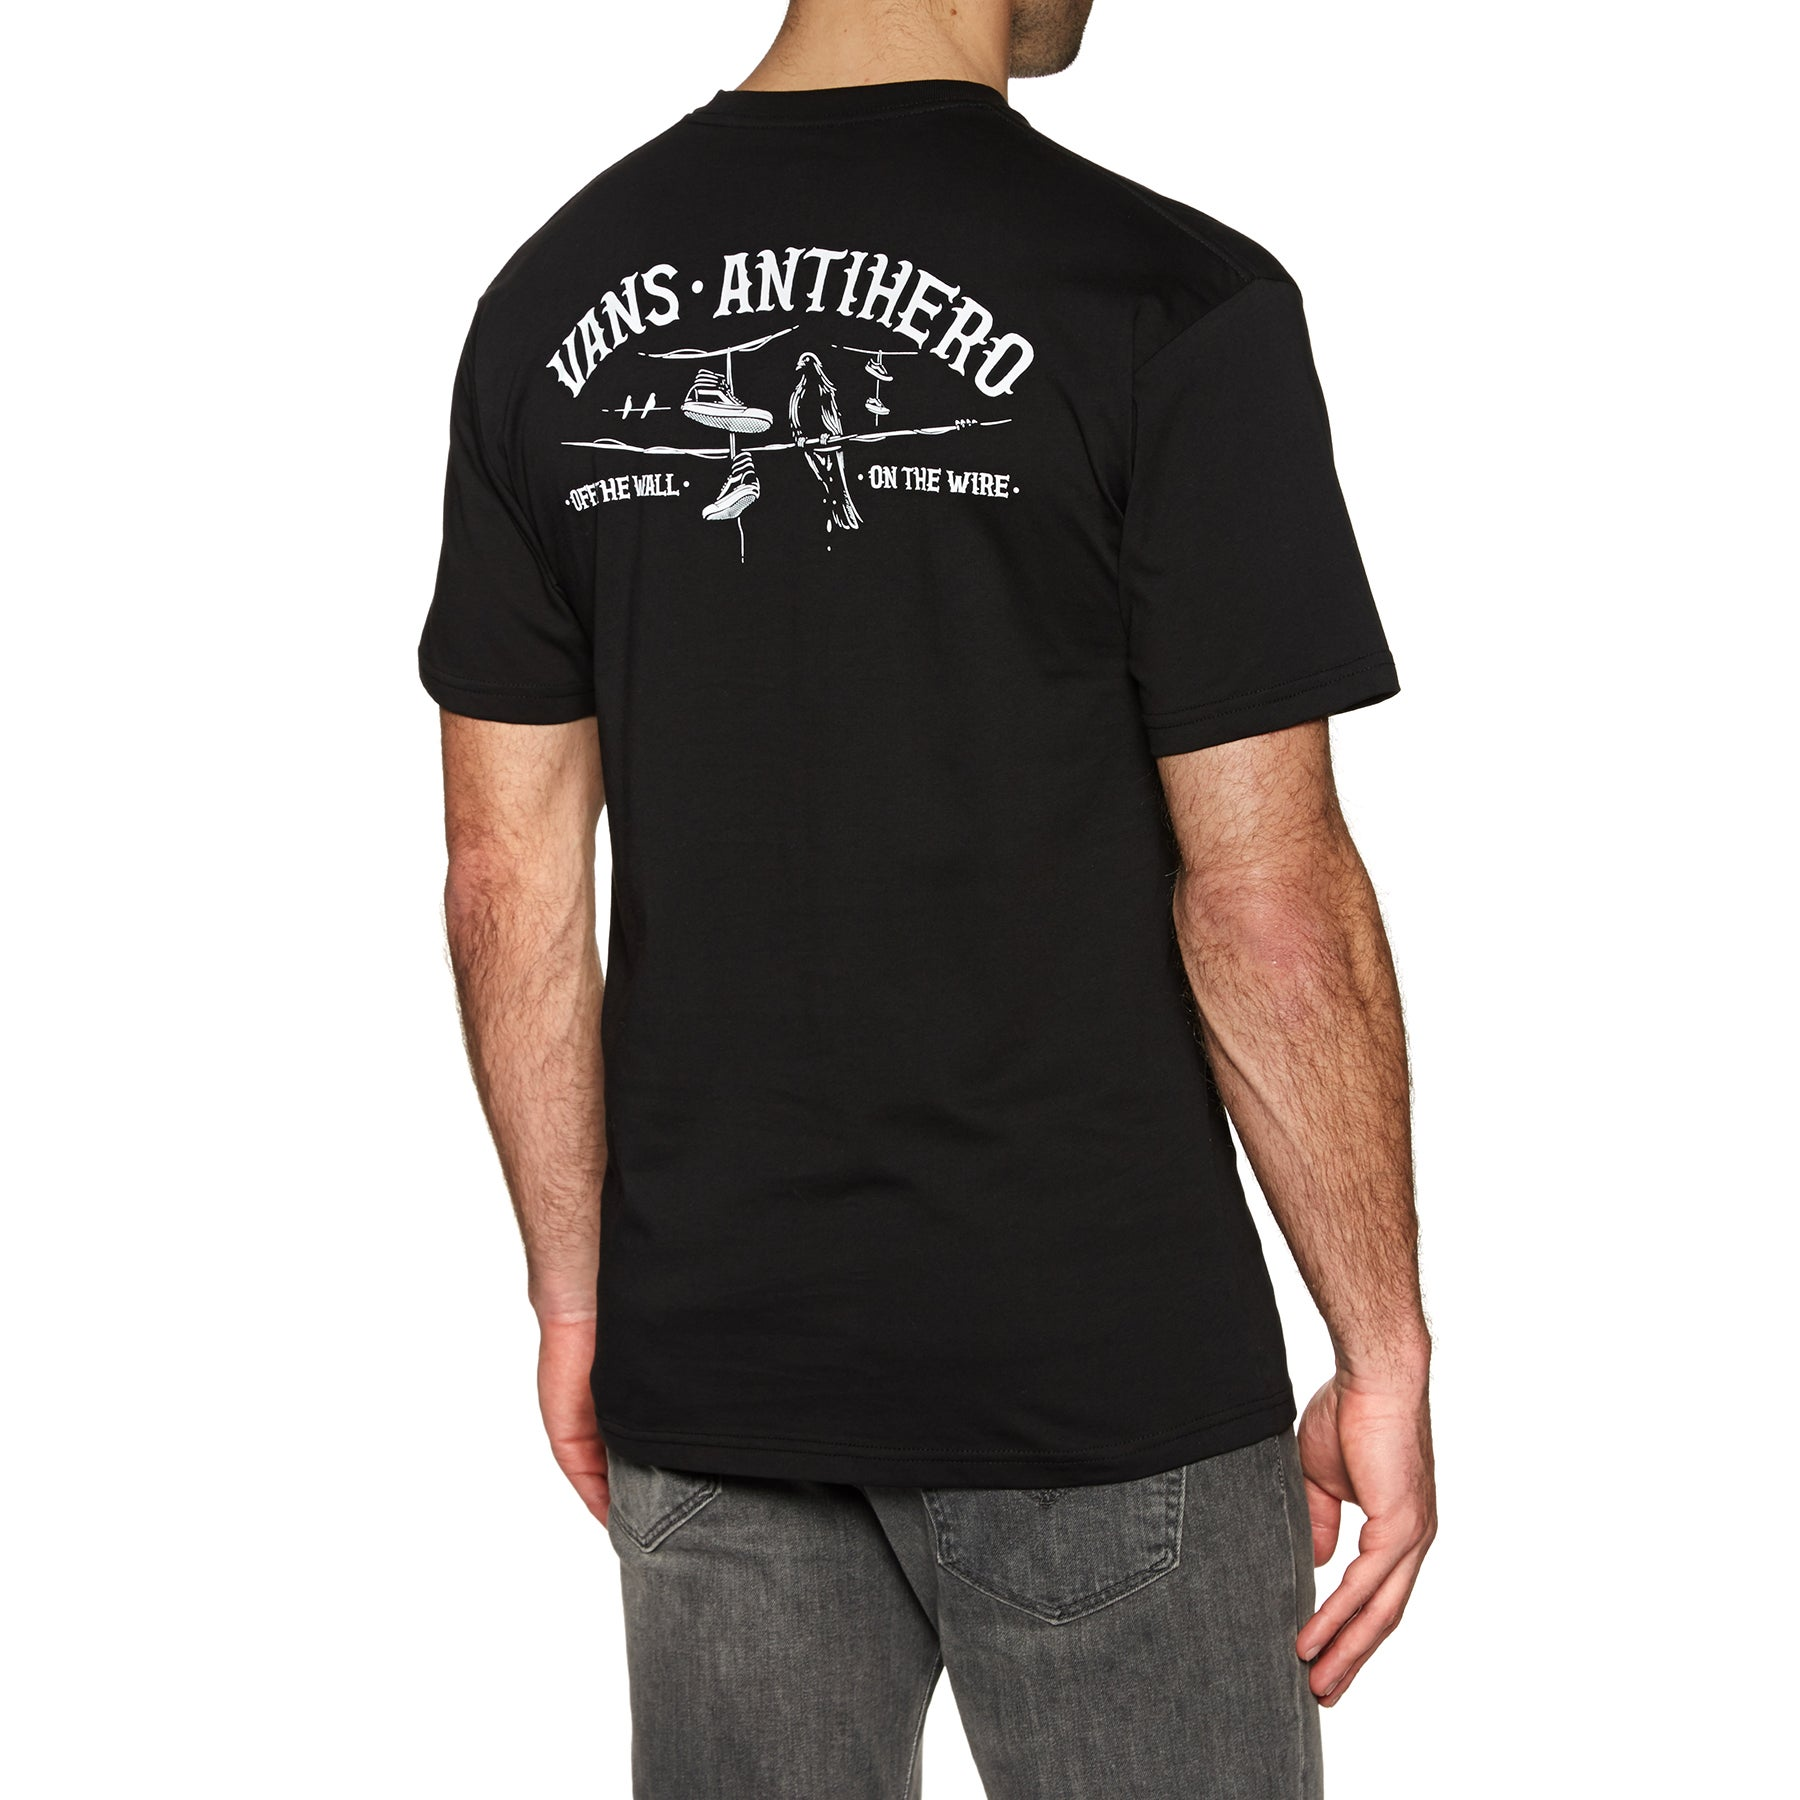 Vans X Anti Hero On The Wire Short Sleeve T-Shirt - Black